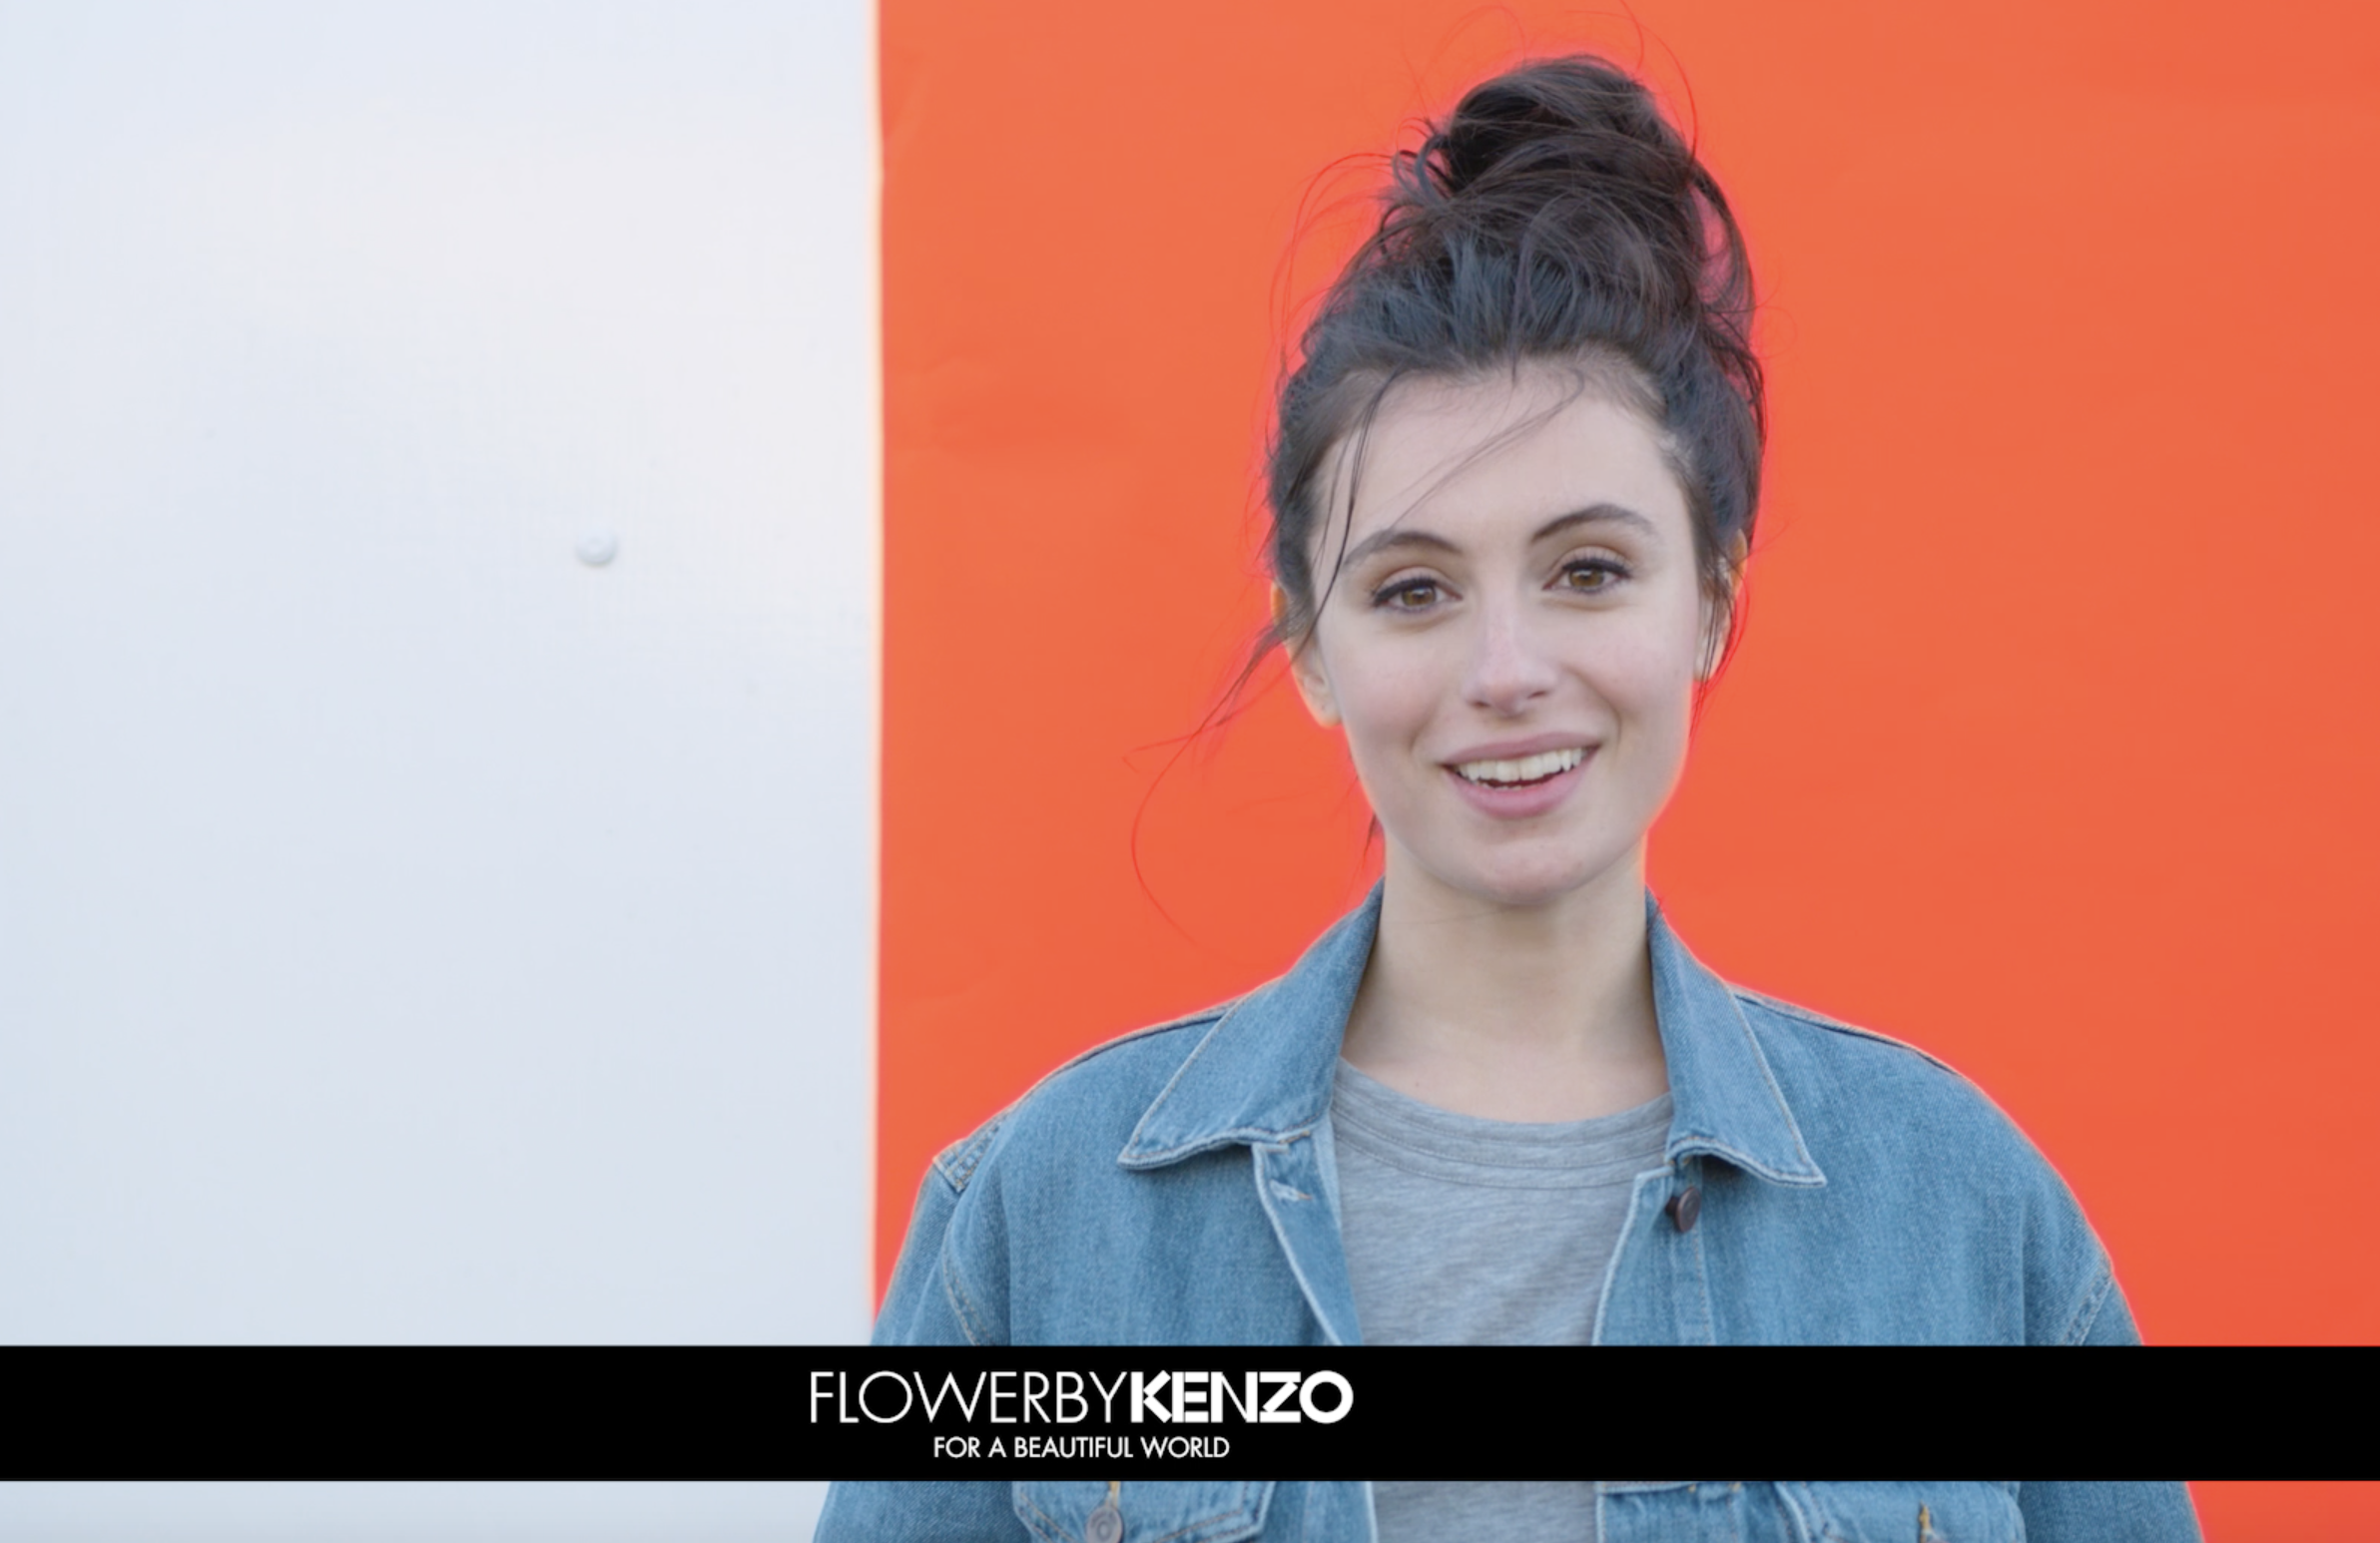 Actress and Influencer Marta Pozzan in the new Flower by KENZO film campaign.